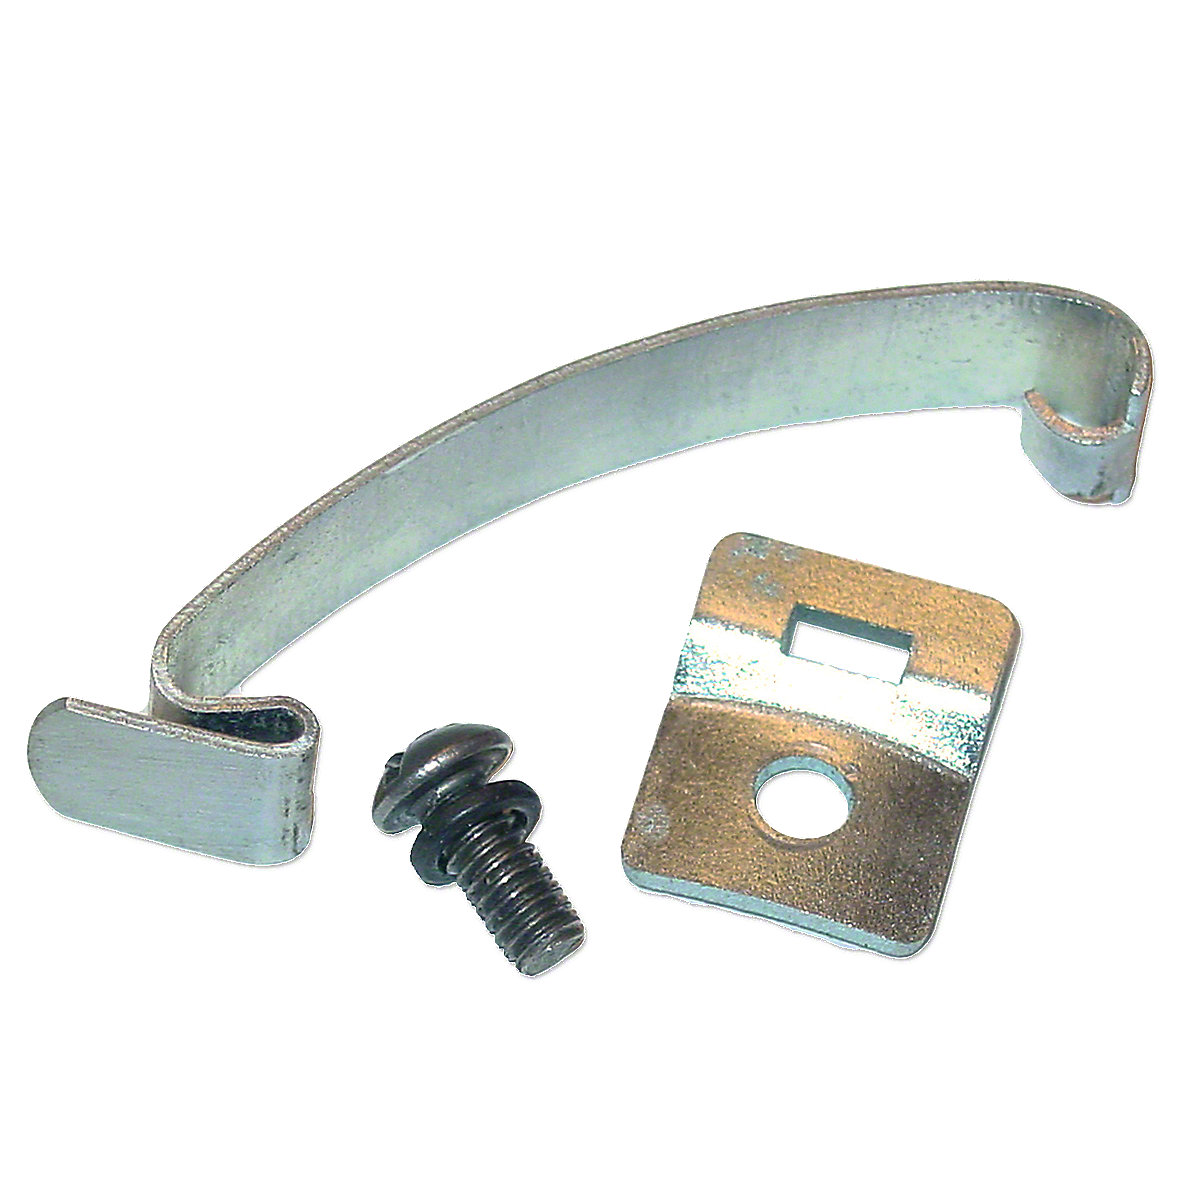 Distributor Cap Spring Clip With Bracket For Delco Distributors With The Clip Held Cap. Fit Oliver: Super 44, Super 55, 60, 66, Super 66, 70, 77, Super 77, 88, Super 88, 90, 99, 440, 550, 660, 770, 880, early 1800 UP TO SN#:124395 11/16\ Bracket